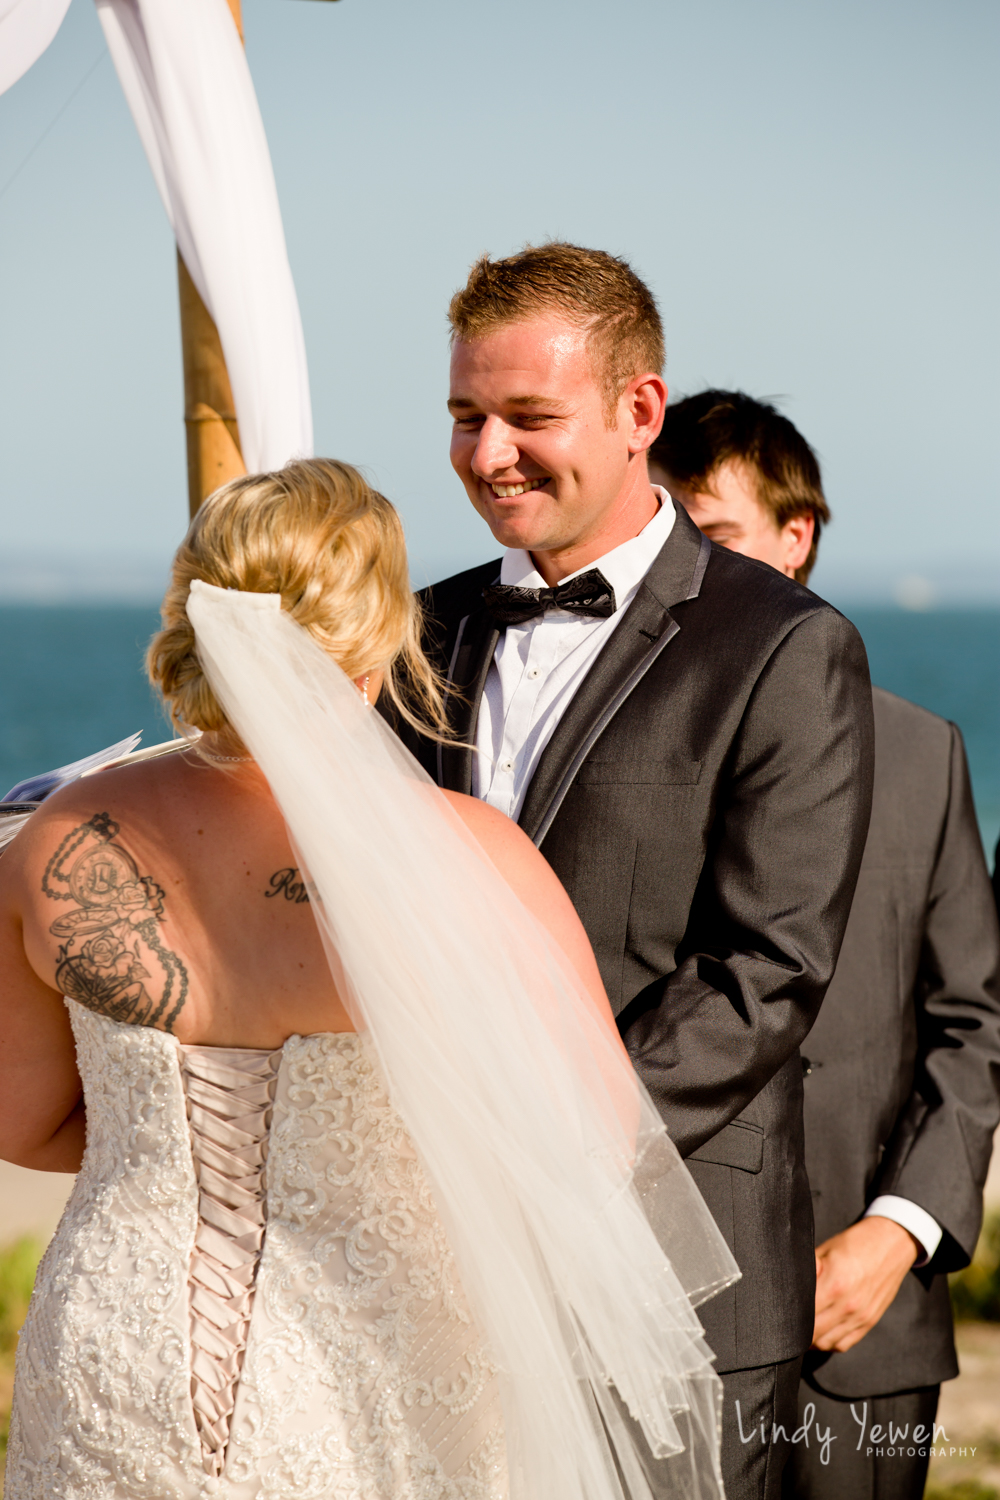 Bribie-Island-wedding-photographer-Chloe-Adam 256.jpg